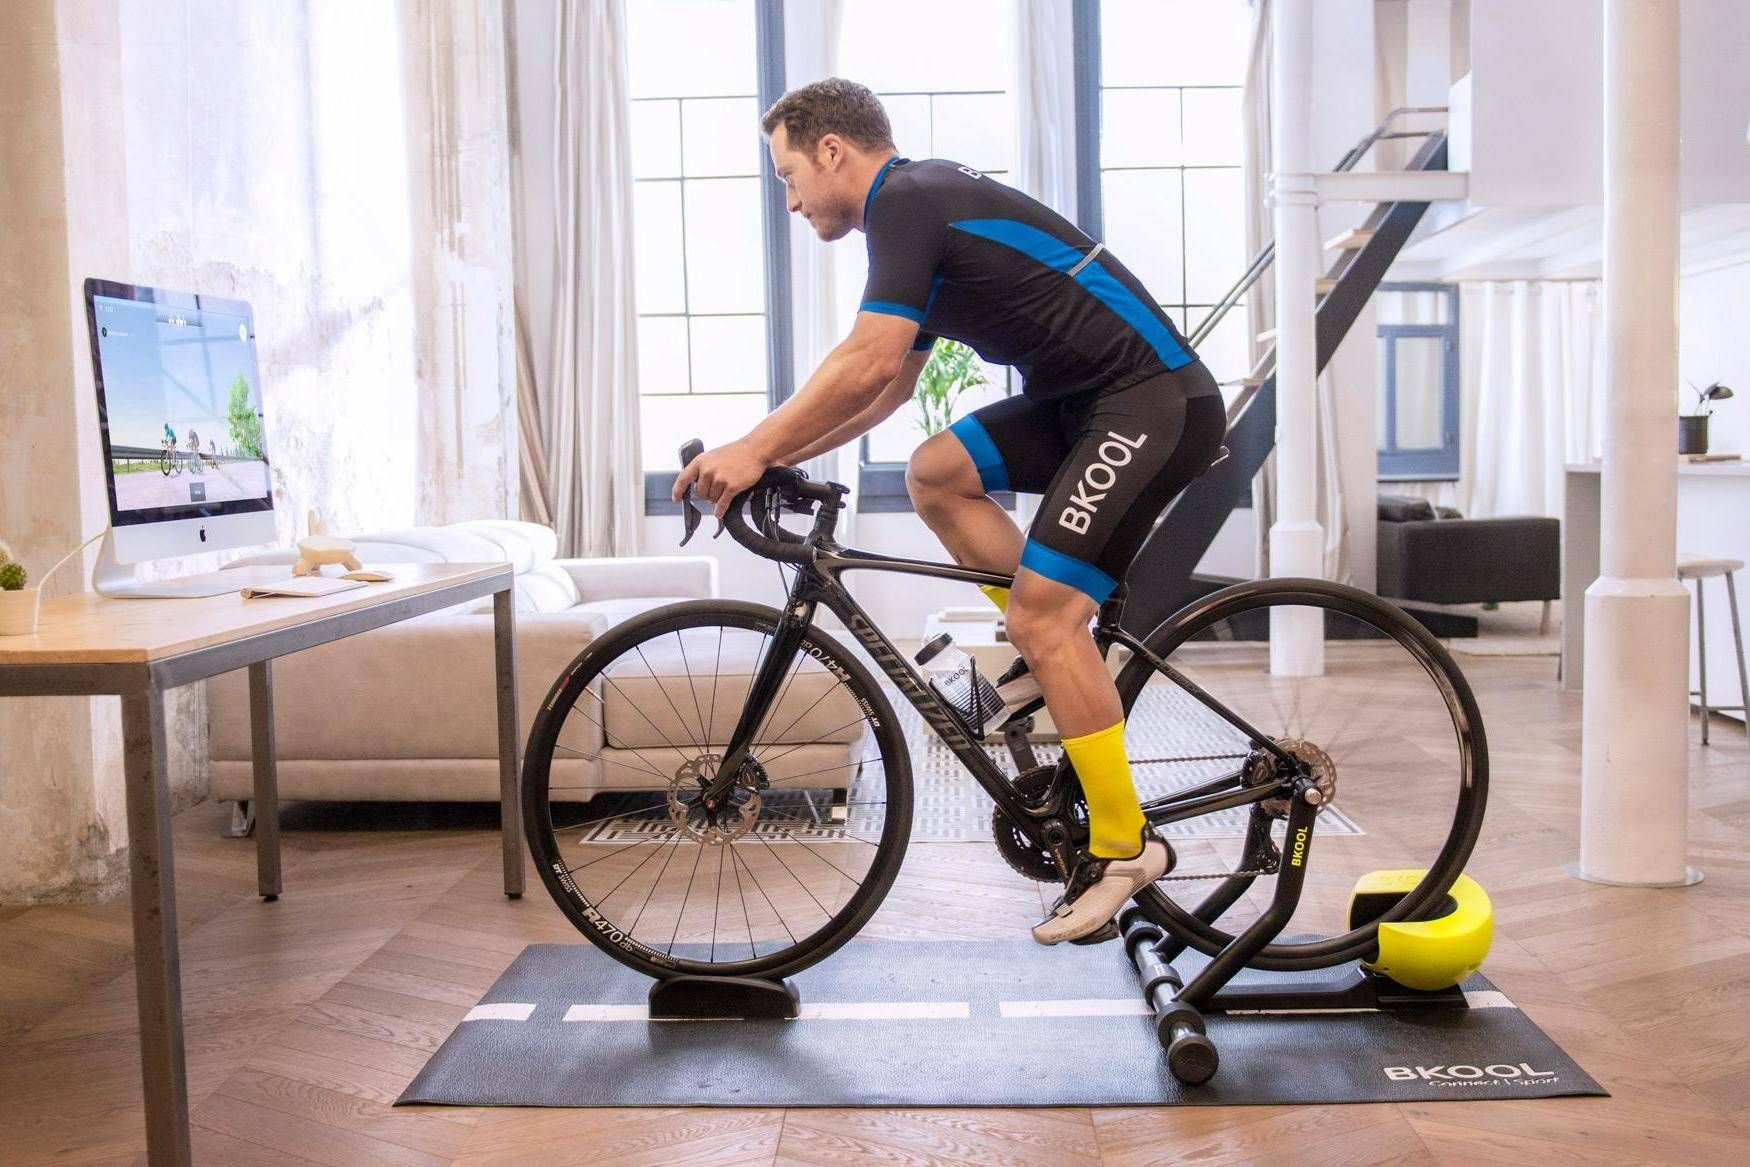 The best fitness gadgets to work off that Easter chocolate